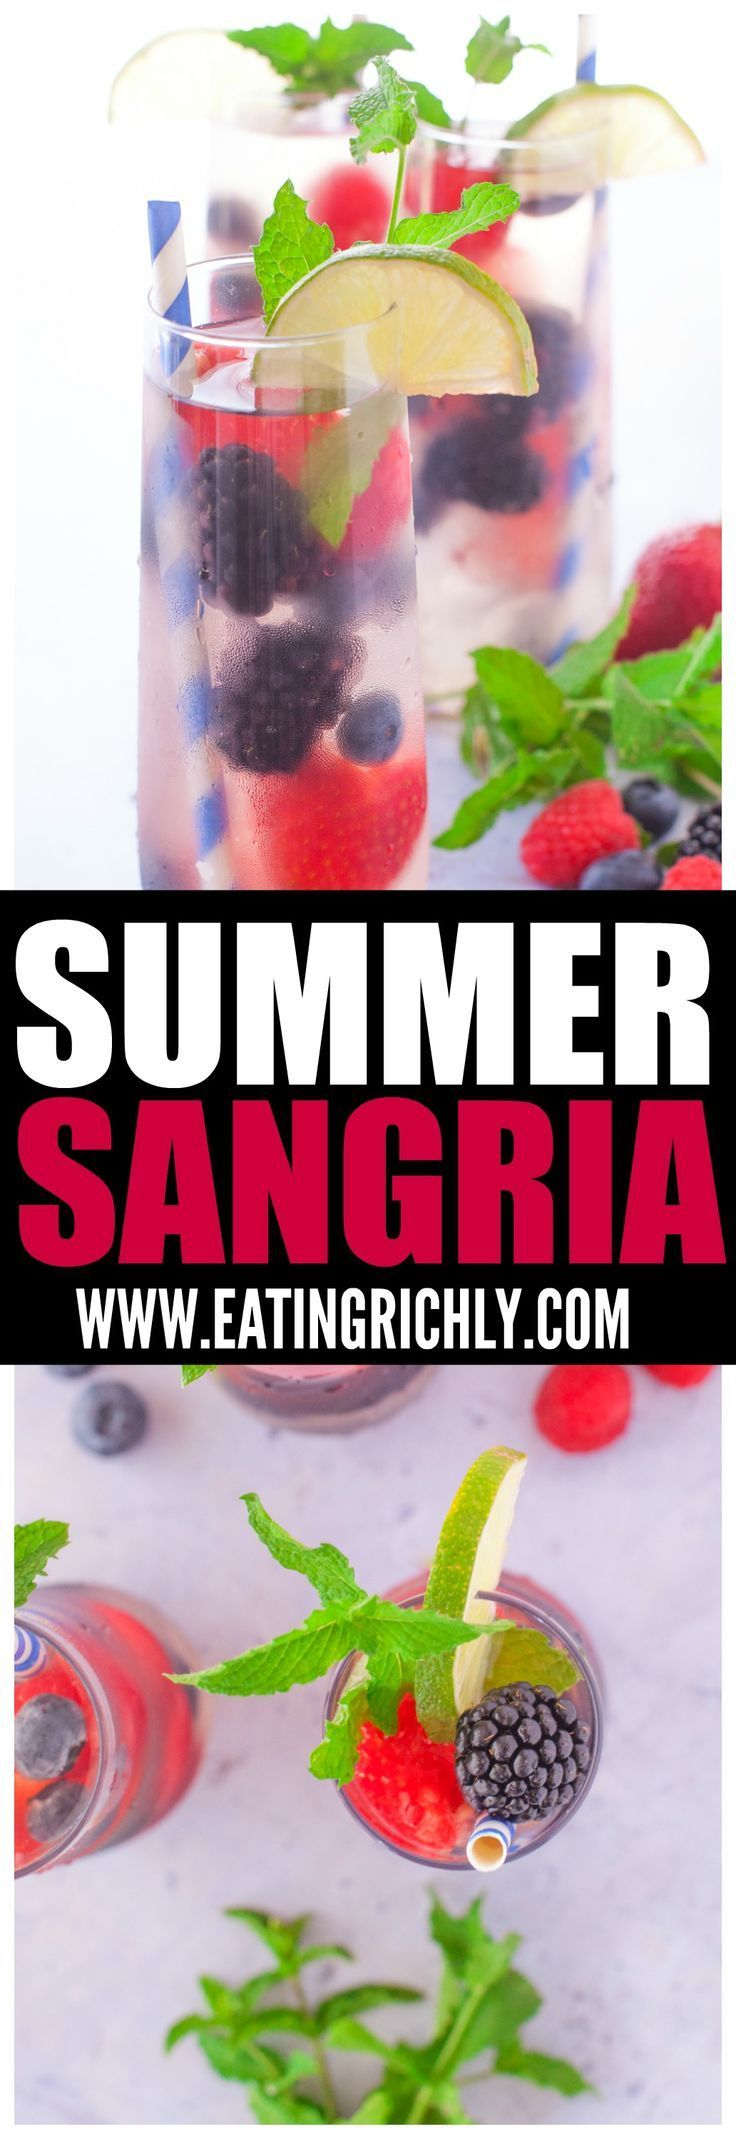 Summer Sangria Delicious Perfect Summer Berries This Refreshing Summer Sangria Berry Punch Is Made With Ries Summer Sangria White Sangria Recipe Berry Punch